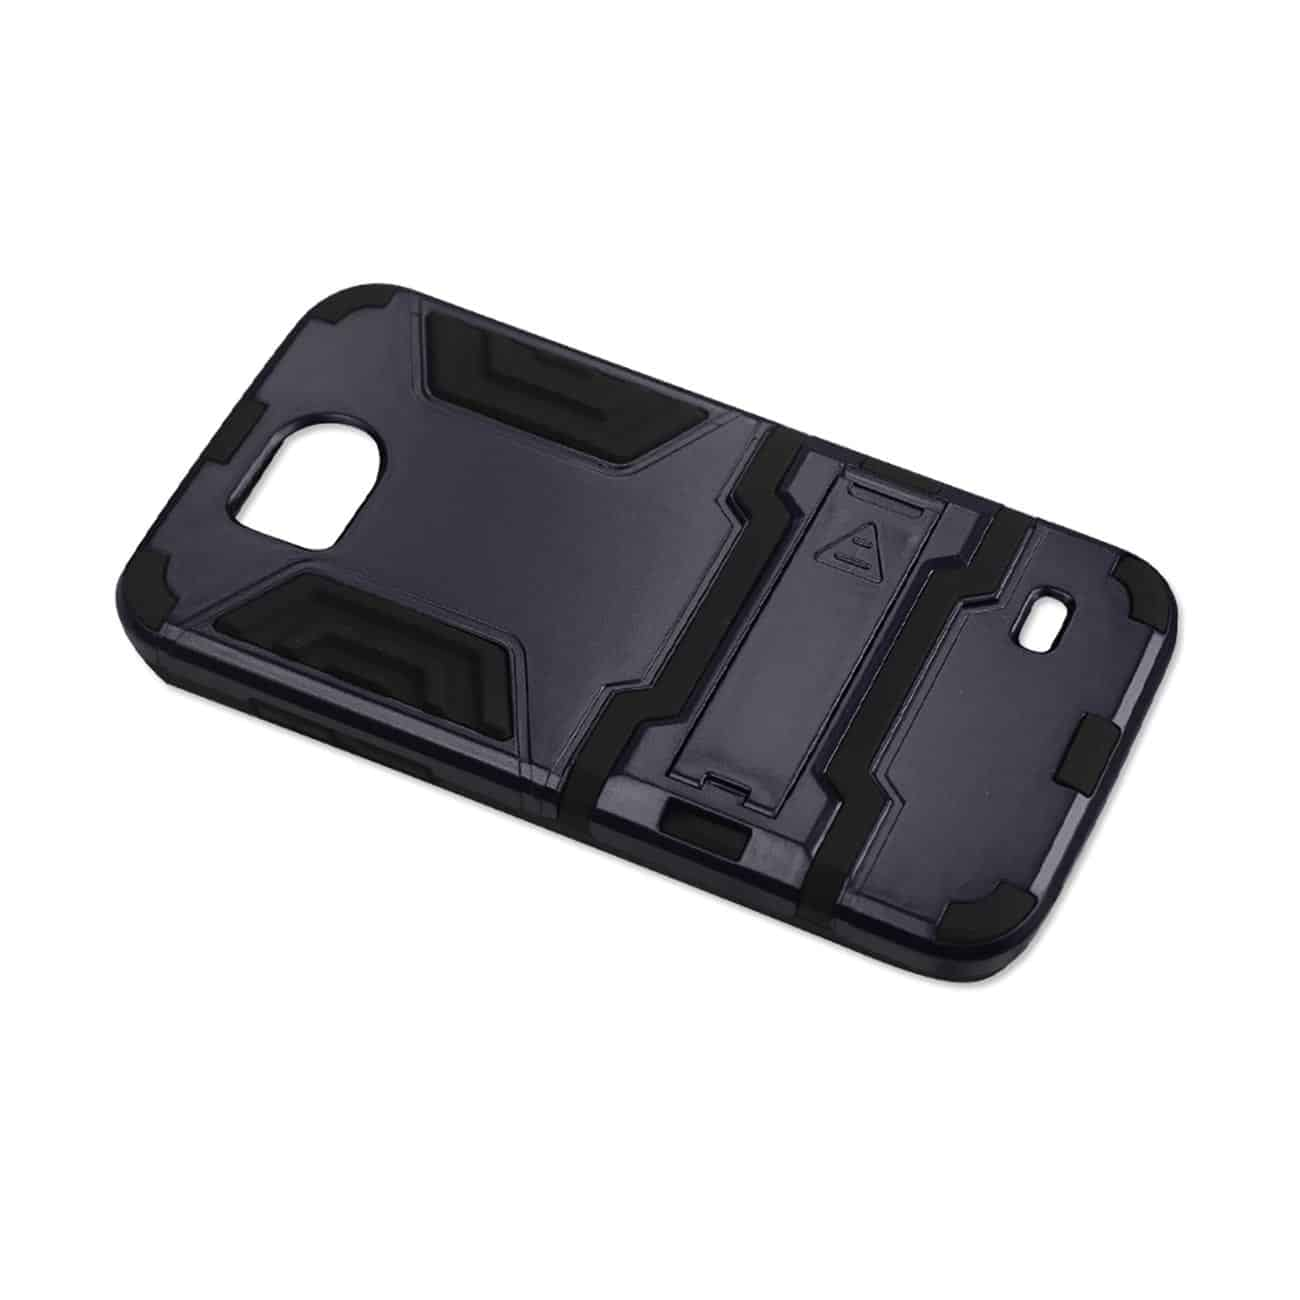 ZTE OVERTURE 2 HYBRID METALLIC CASE WITH KICKSTAND IN BLACK NAVY